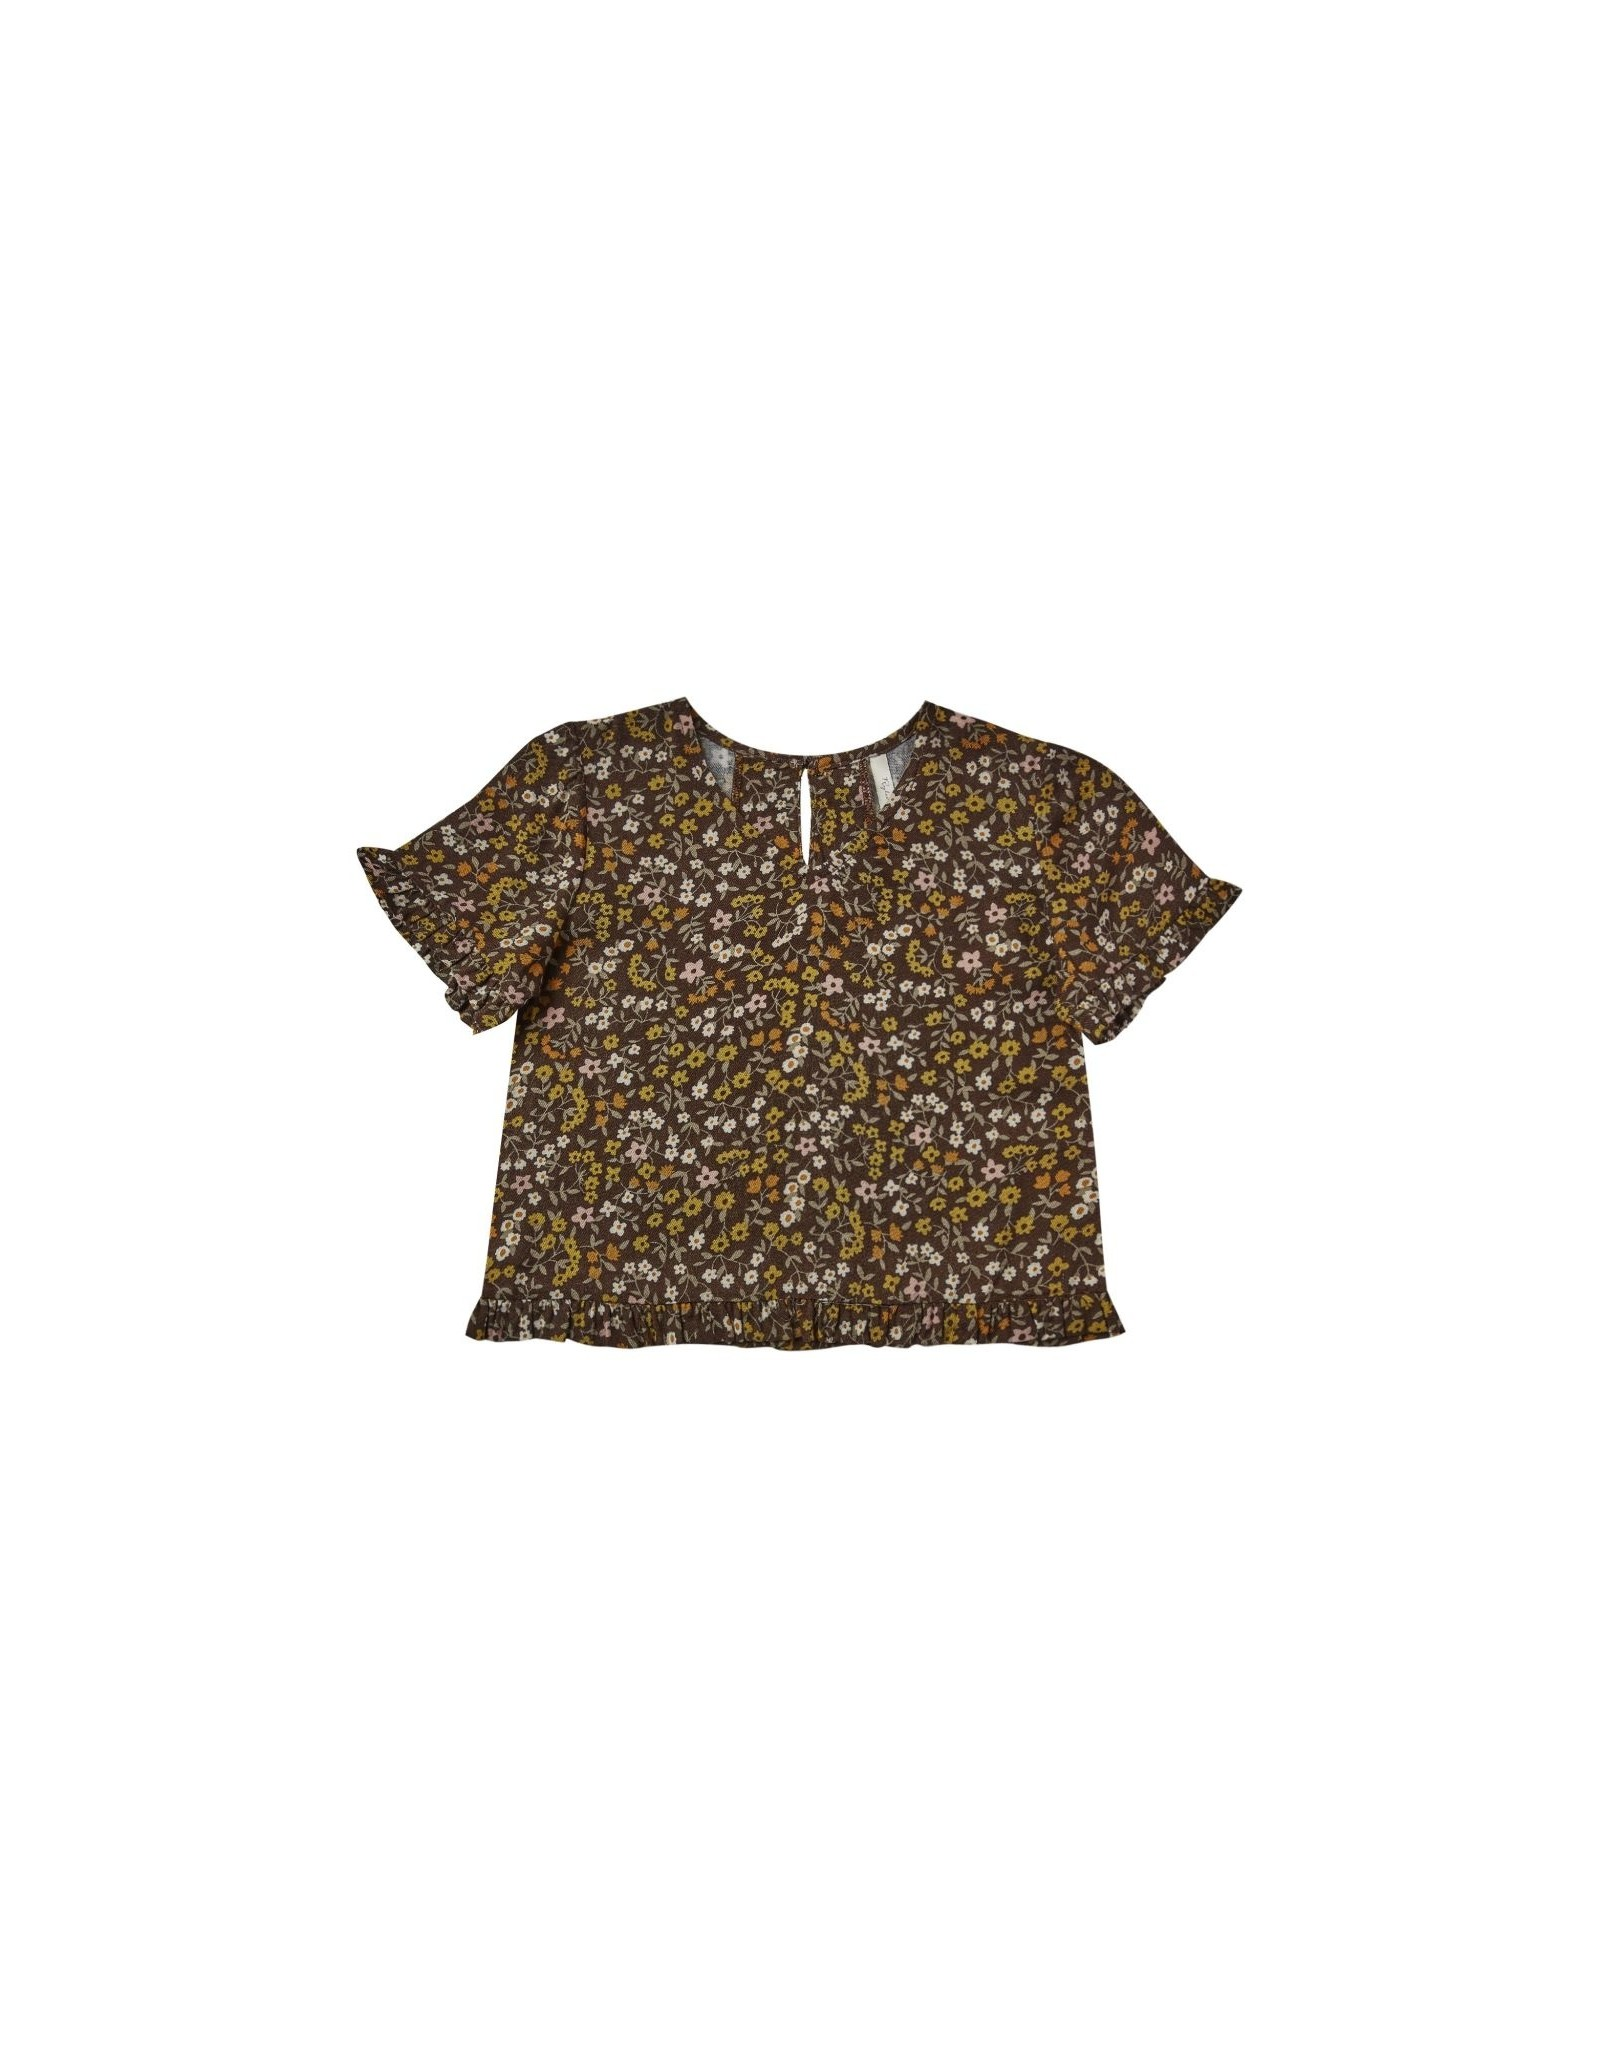 Rylee and Cru floral rory top